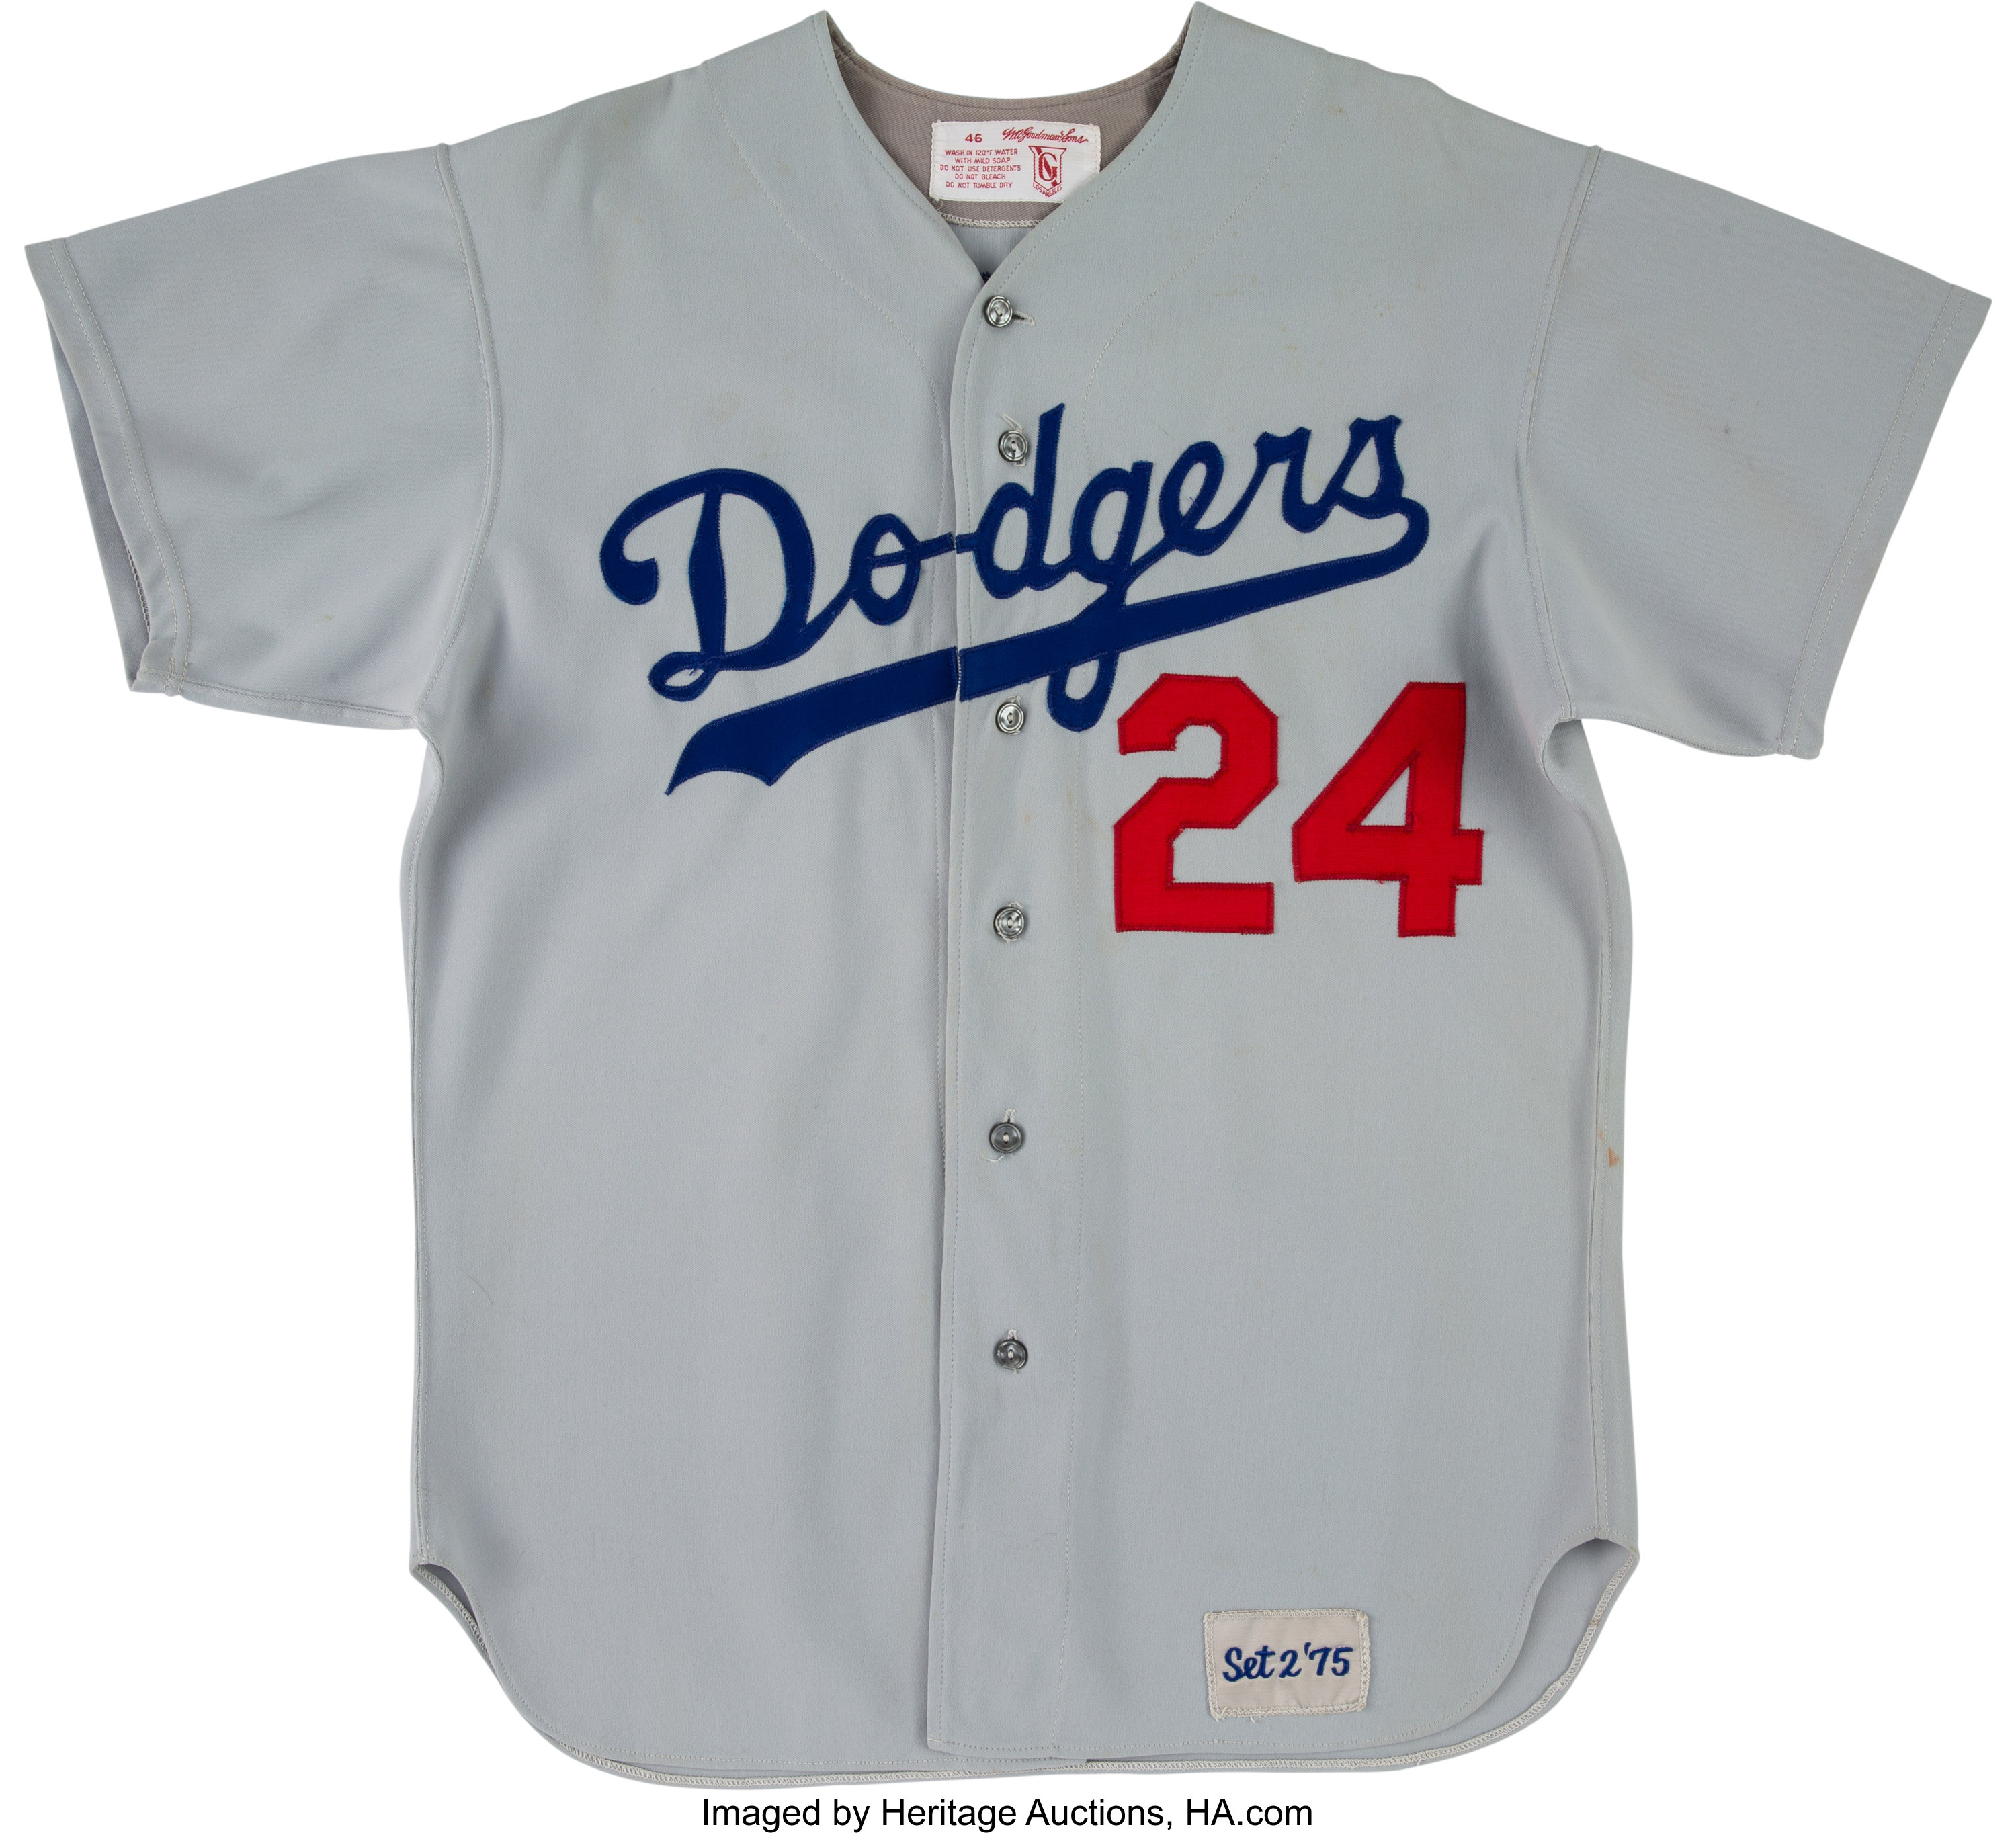 on sale ab91d 1d12d 1975 Walter Alston Game Worn Los Angeles Dodgers Jersey.... | Lot #53458 |  Heritage Auctions